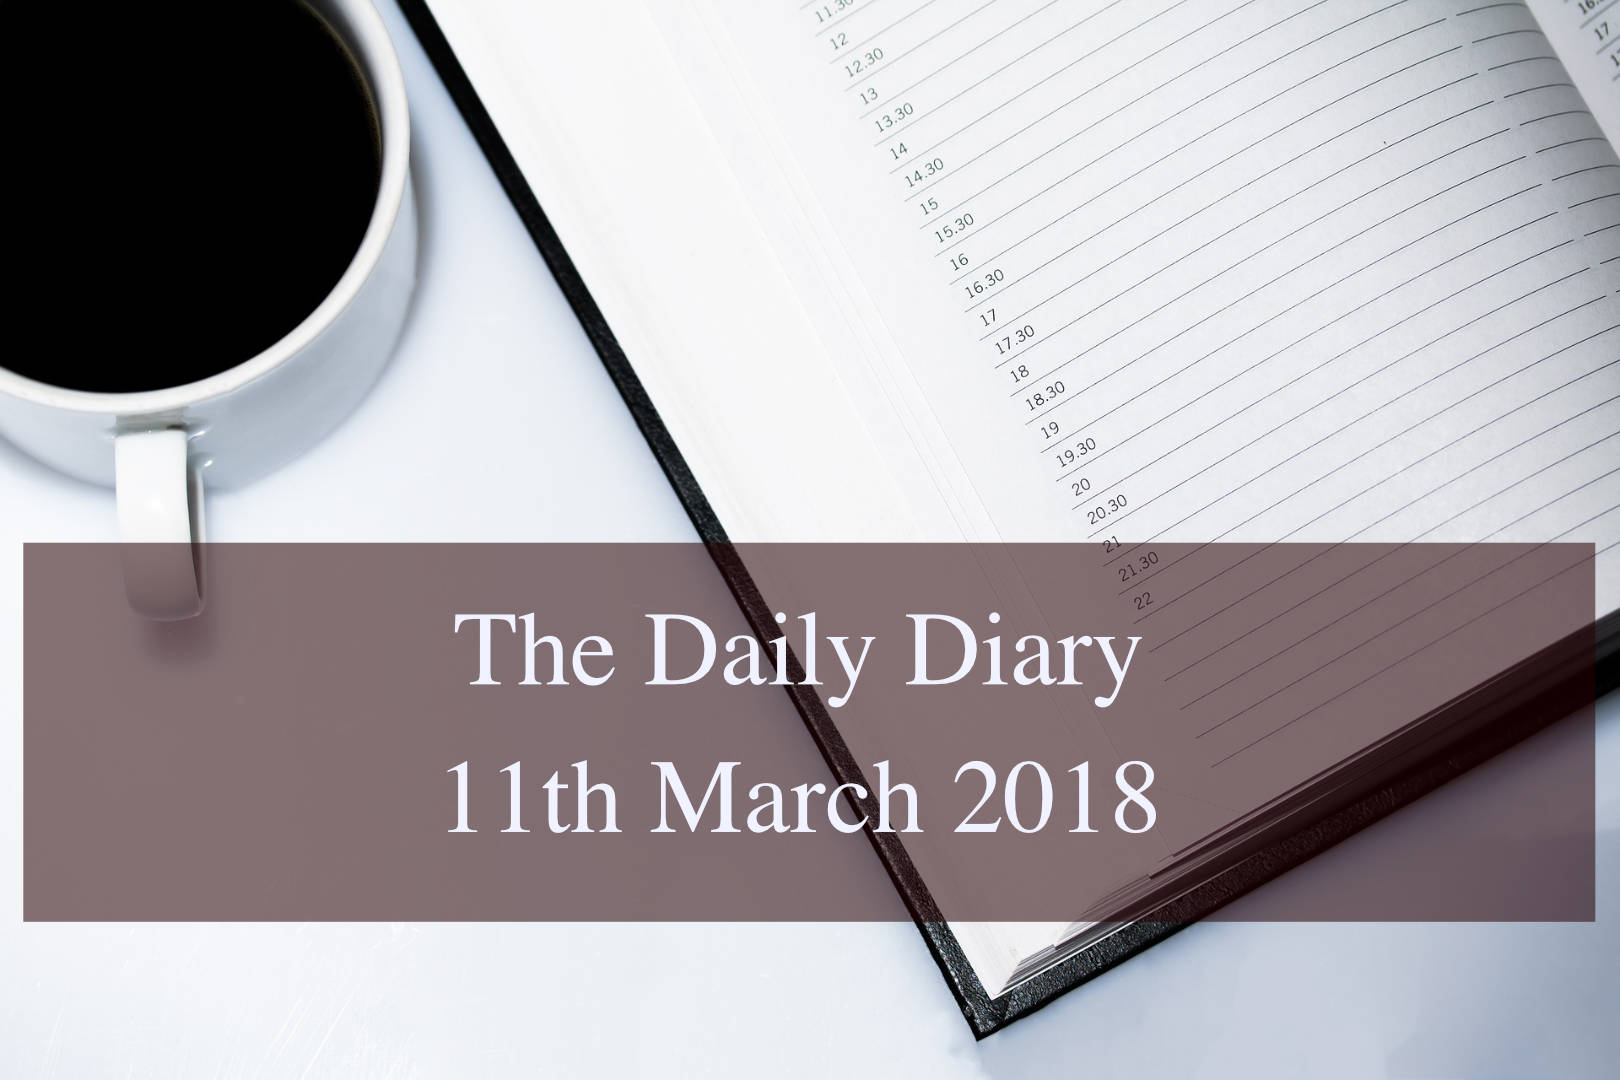 Daily Diary – 11th March 2018